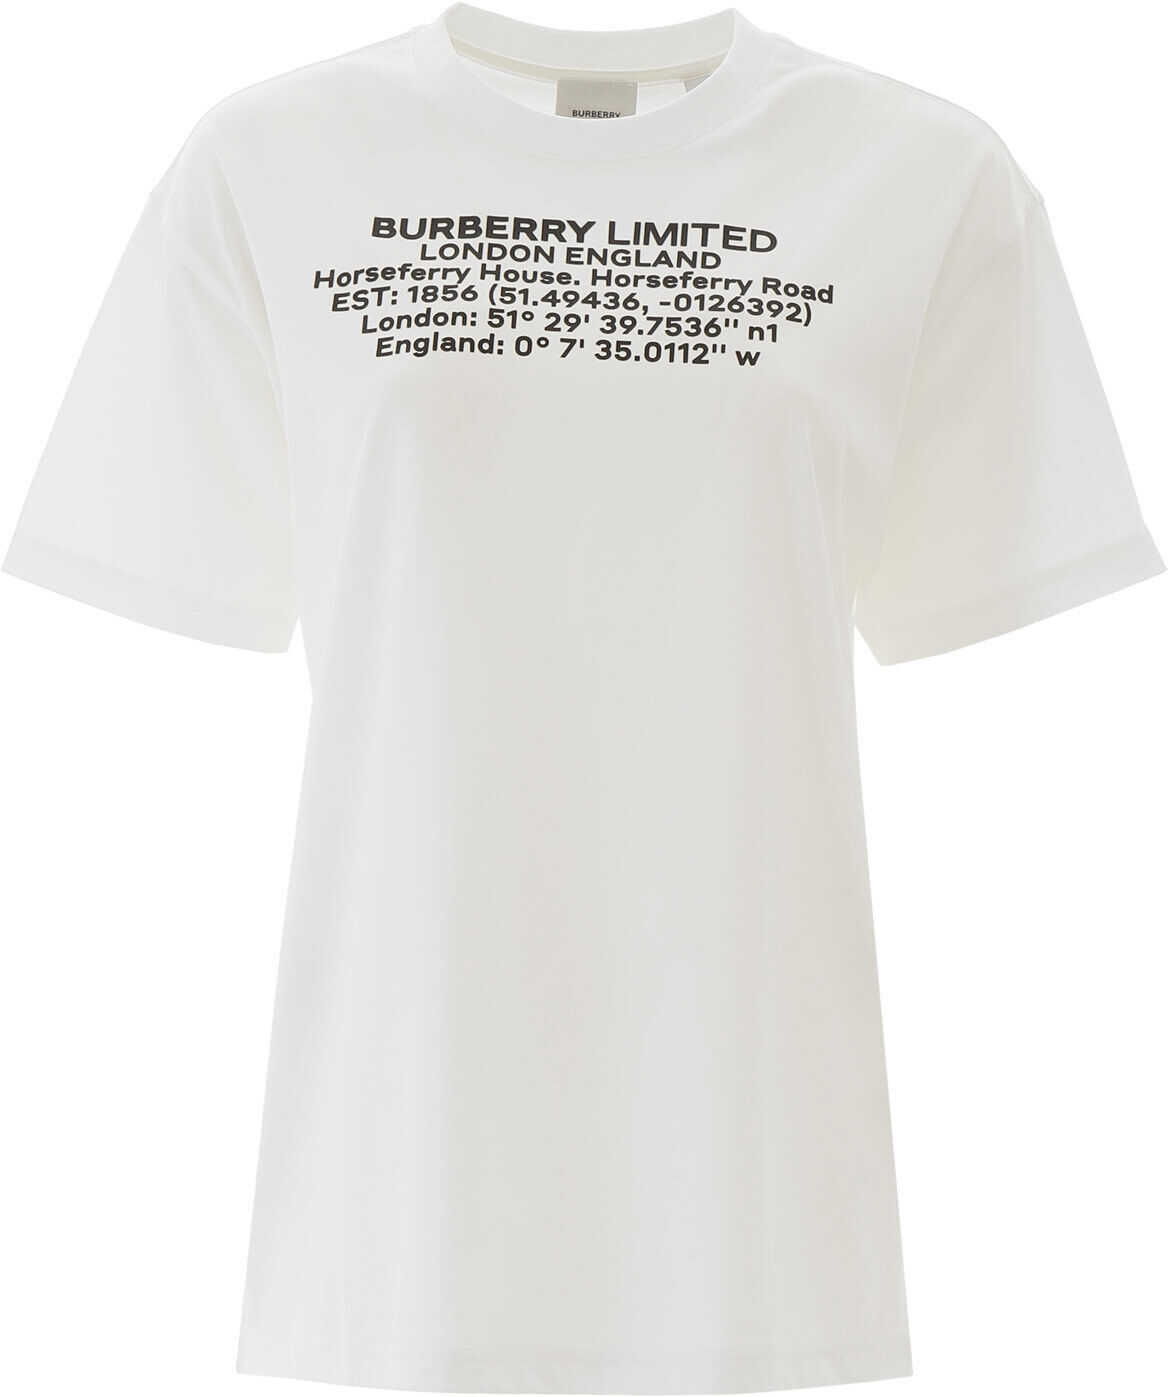 Burberry T-Shirt With Coordinates WHITE